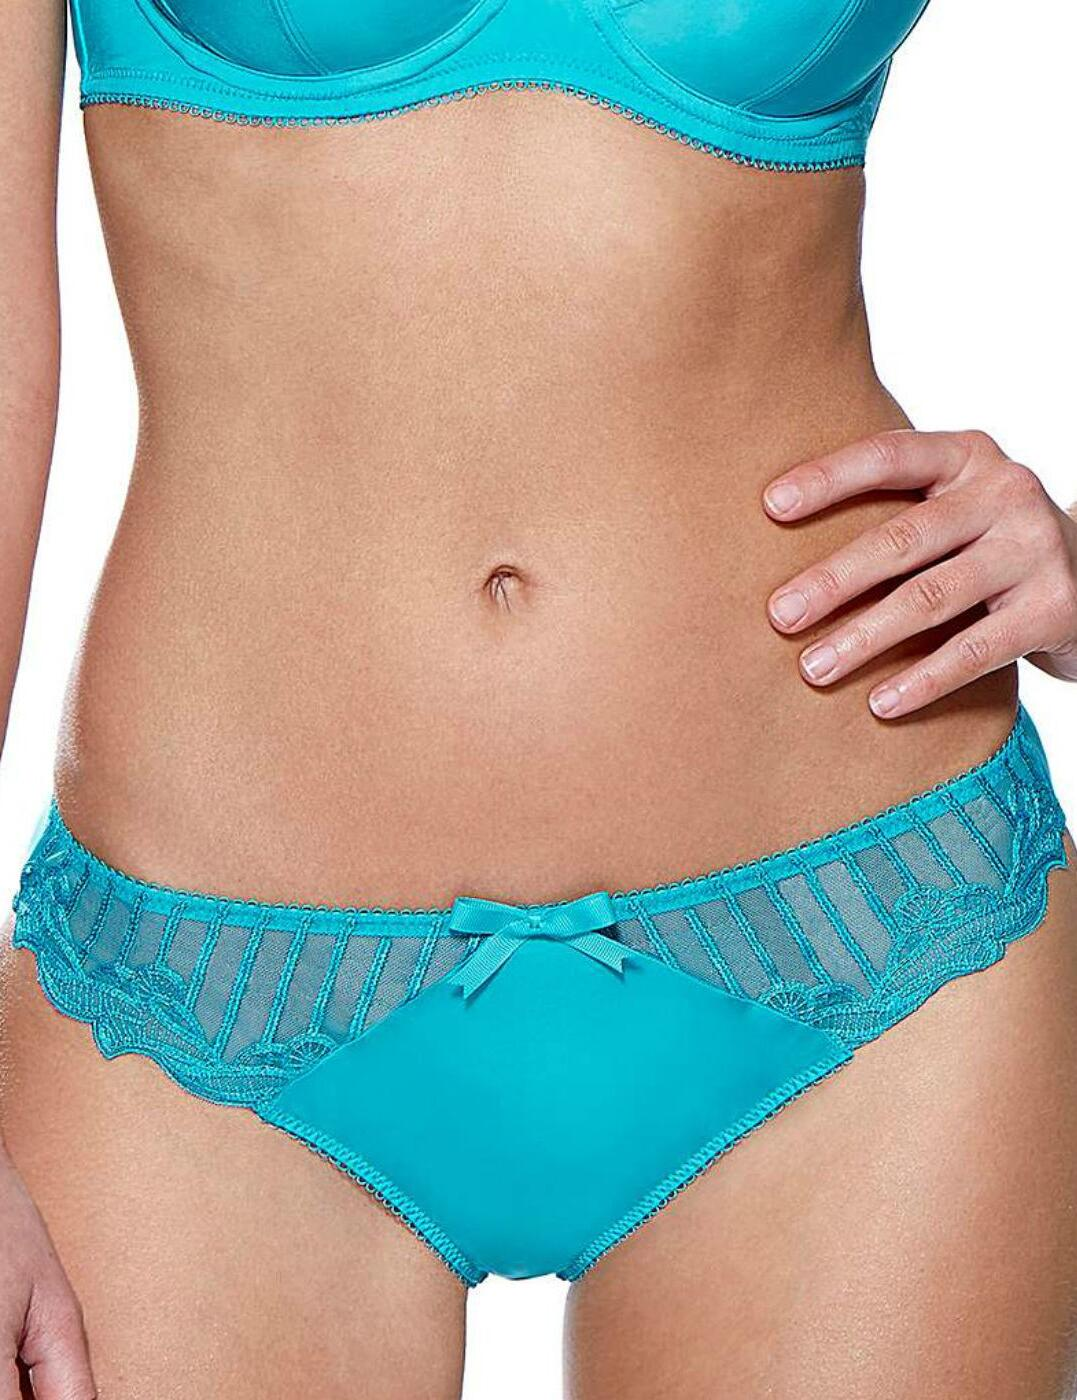 1295100 Charnos Sienna Brief - 1295100 Turquoise Brief